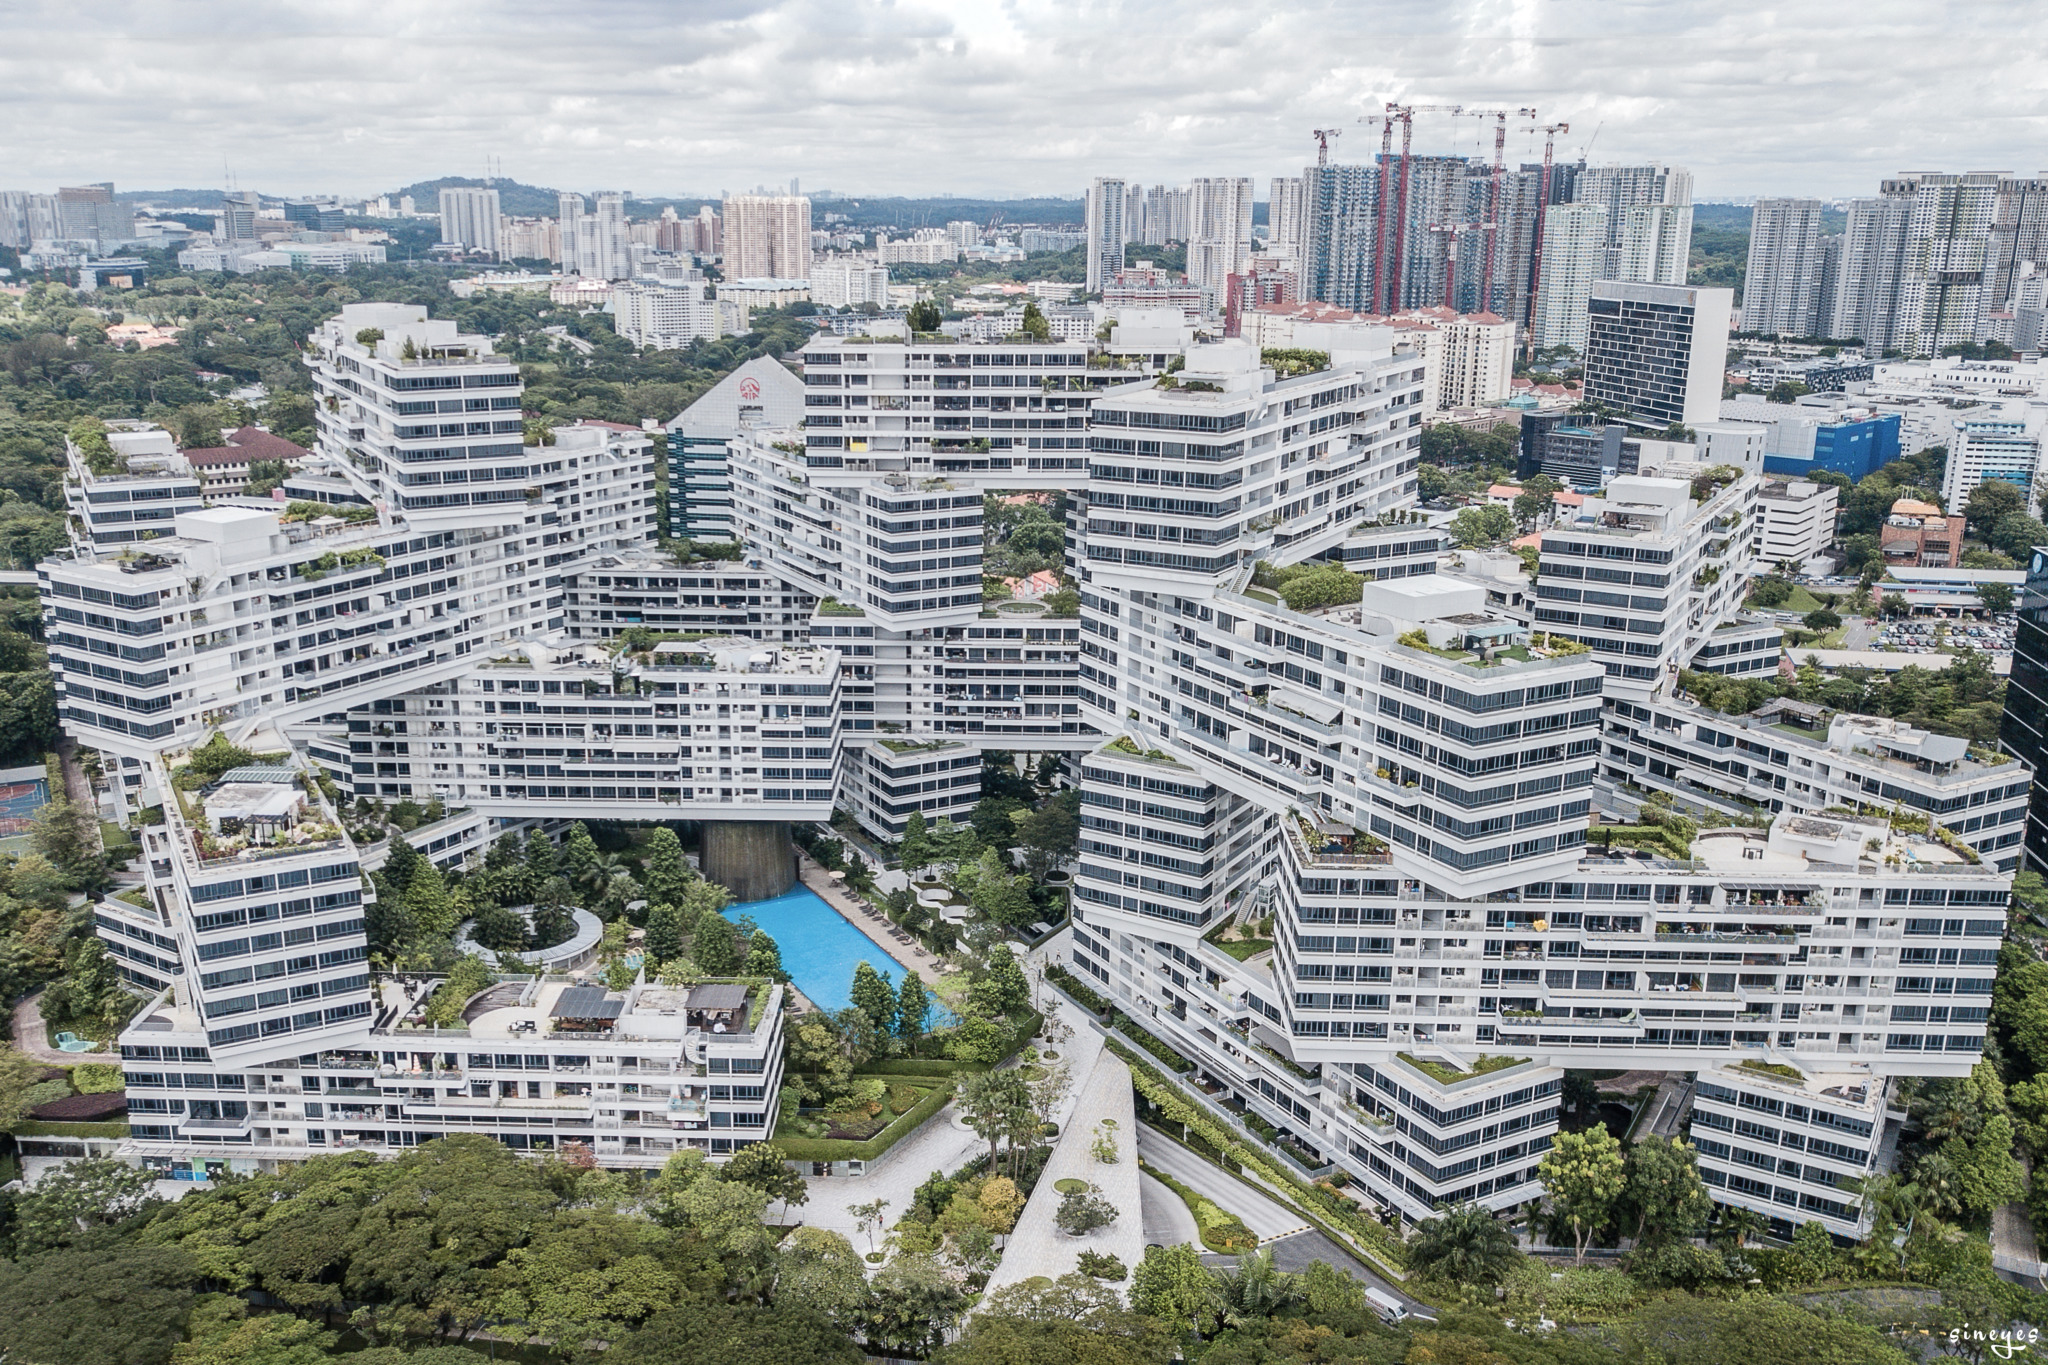 The interlace by sineyes